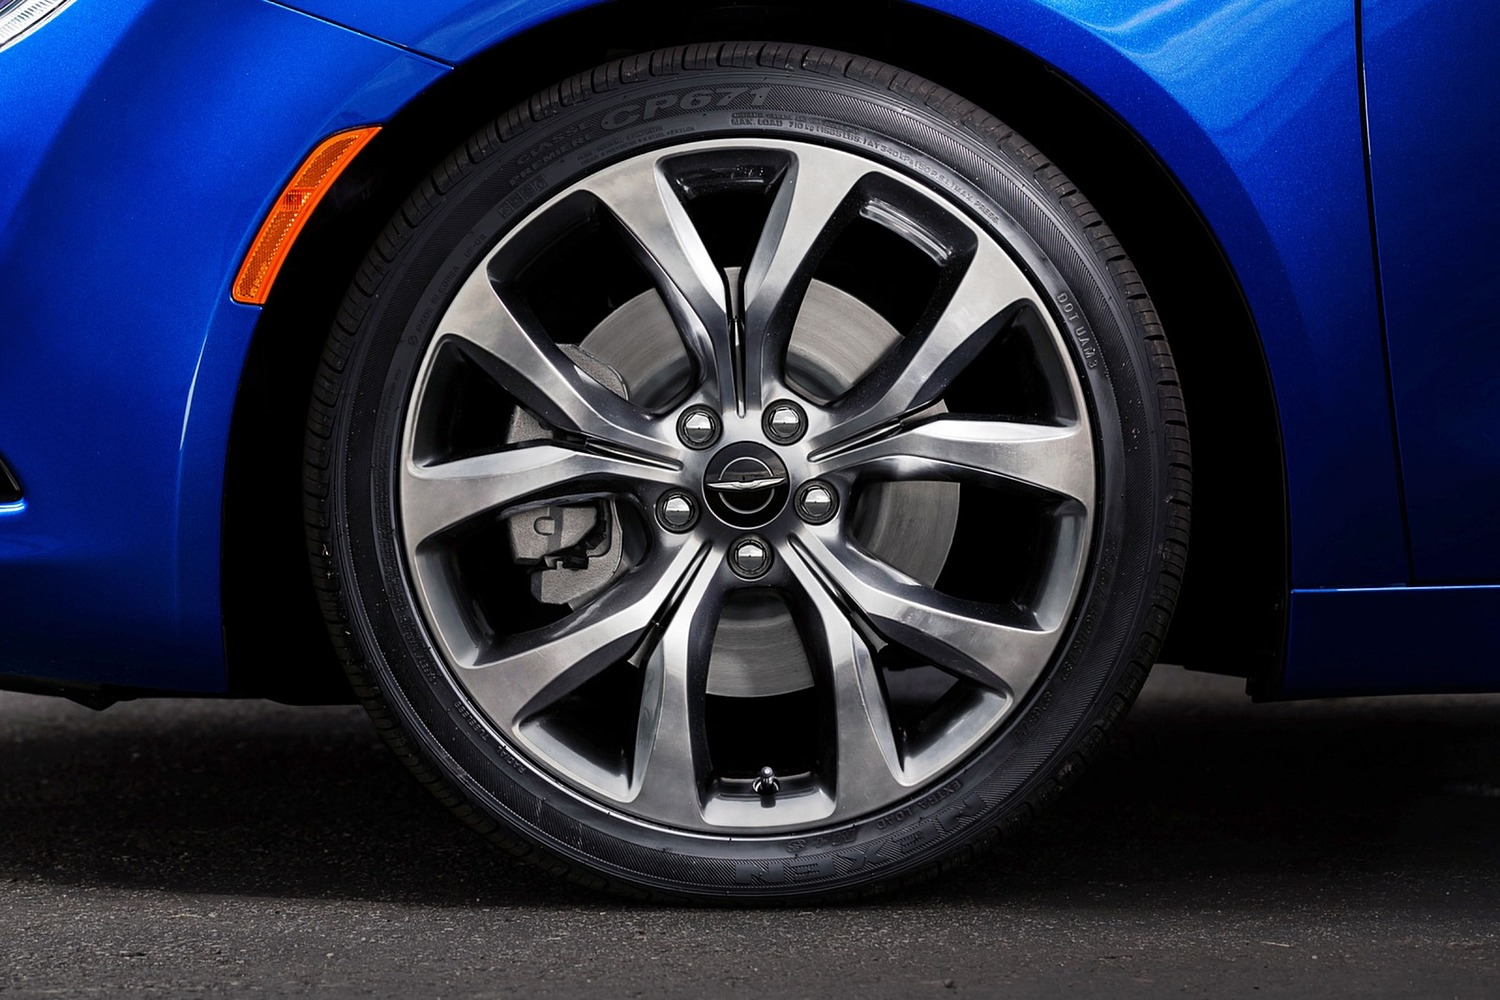 2016 Chrysler 200 S Sedan Wheel